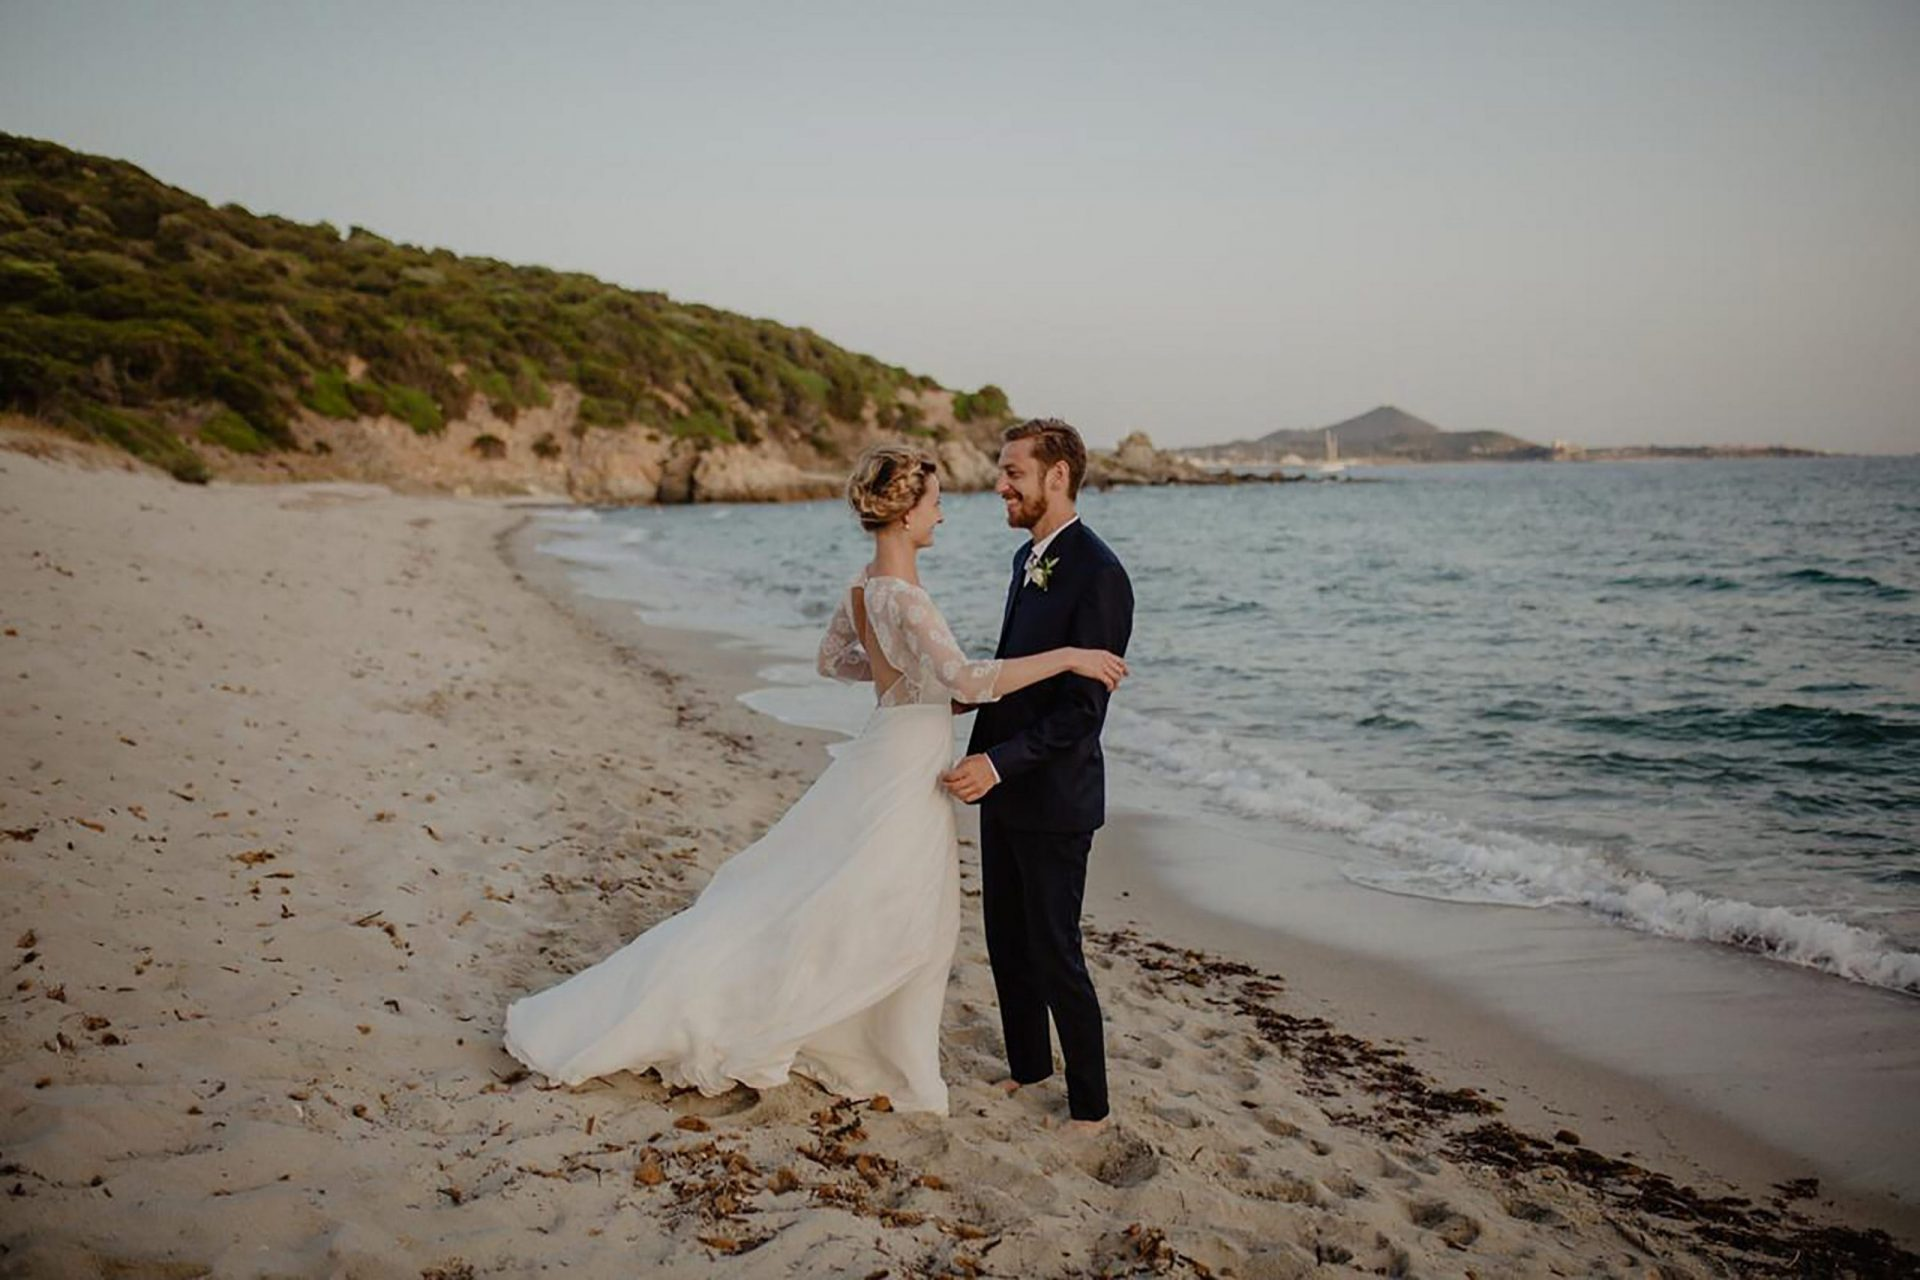 Luca and Delphine, the bride and the groom in Villasimius beach